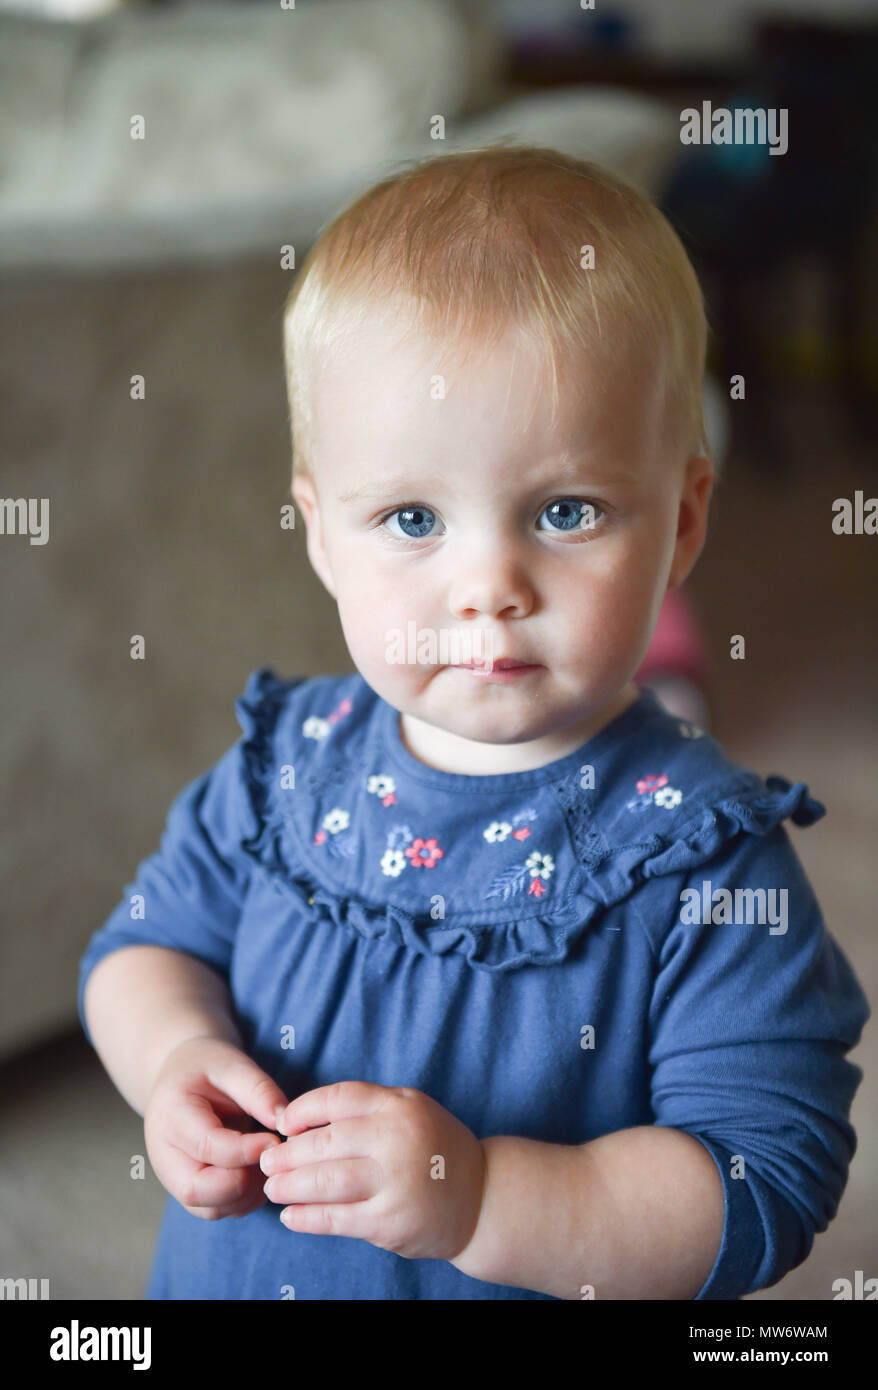 Beautiful young baby girl toddler at 18 months old with short blonde hair model released